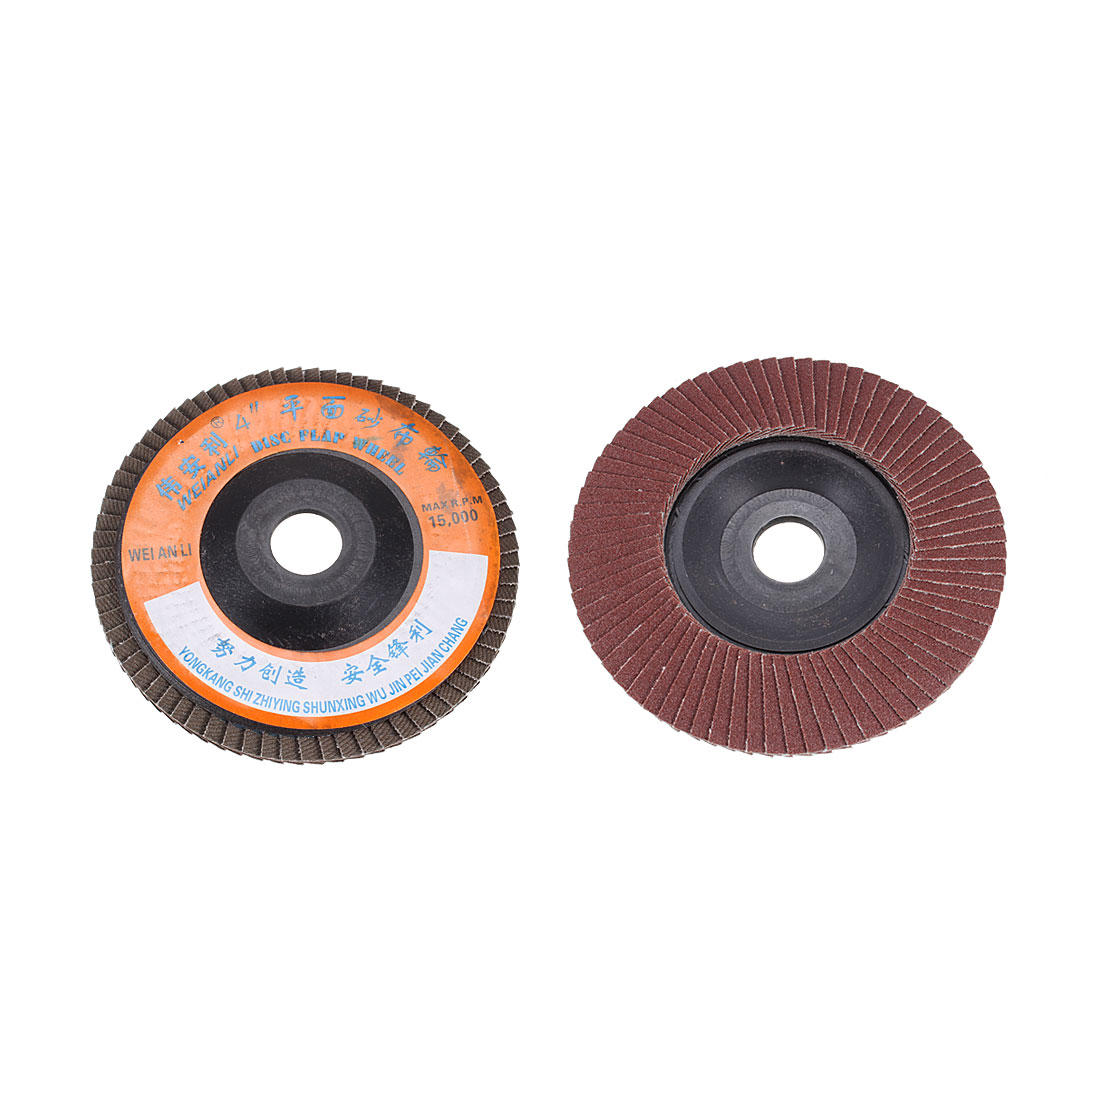 Metal Polishing 100mm Dia 240# Flap Sanding Abrasive Wheels Discs 10Pcs